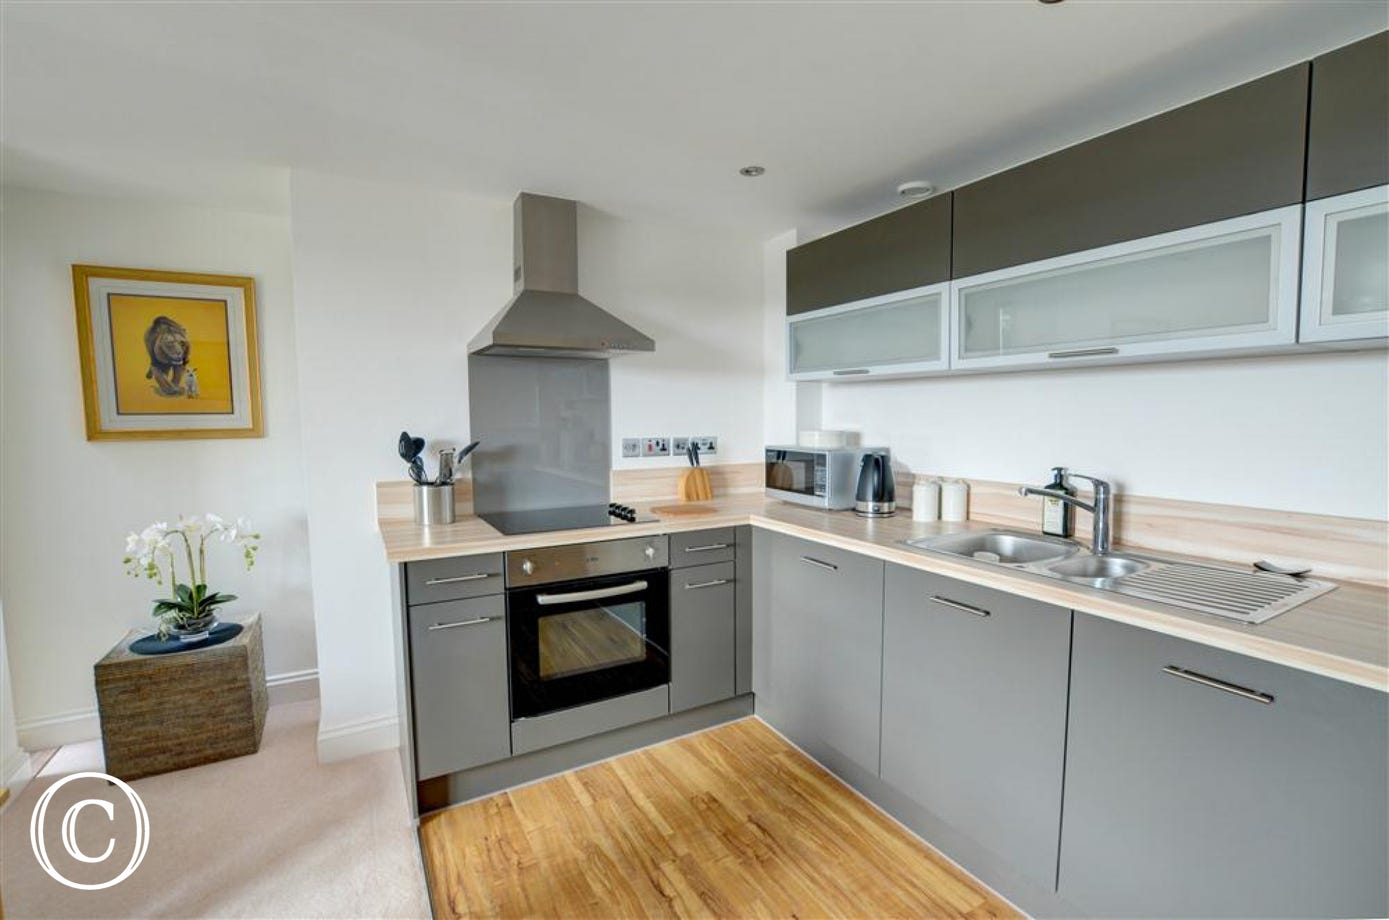 With high quality modern units, the kitchen is open plan